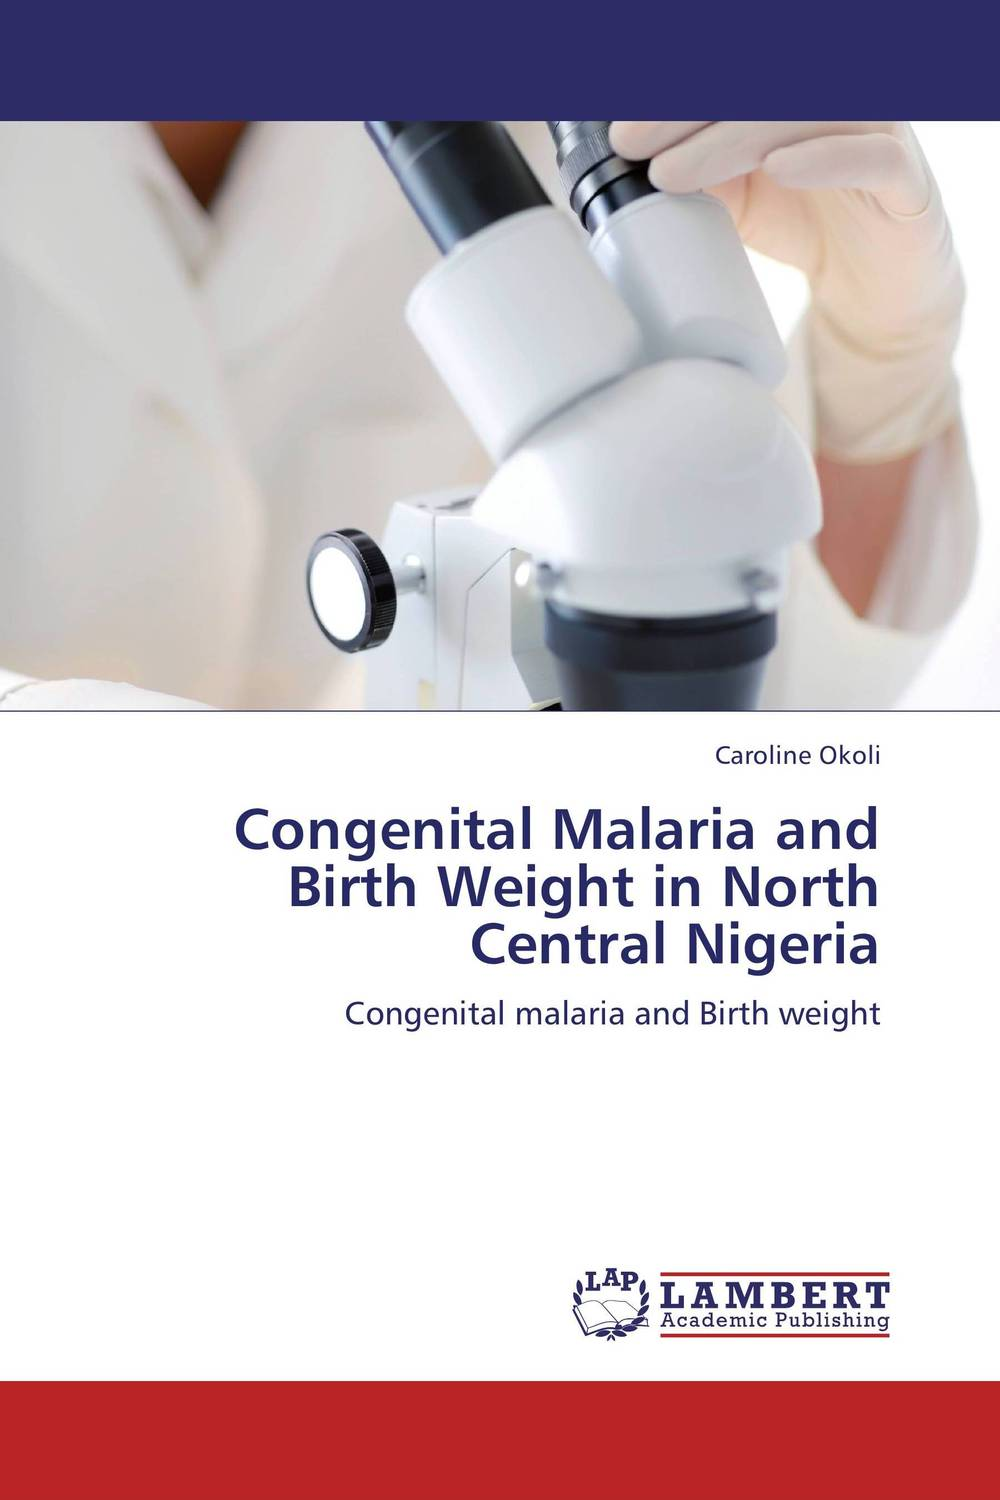 Congenital Malaria and Birth Weight in North Central Nigeria manjari singh introducing and reviewing preterm delivery and low birth weight